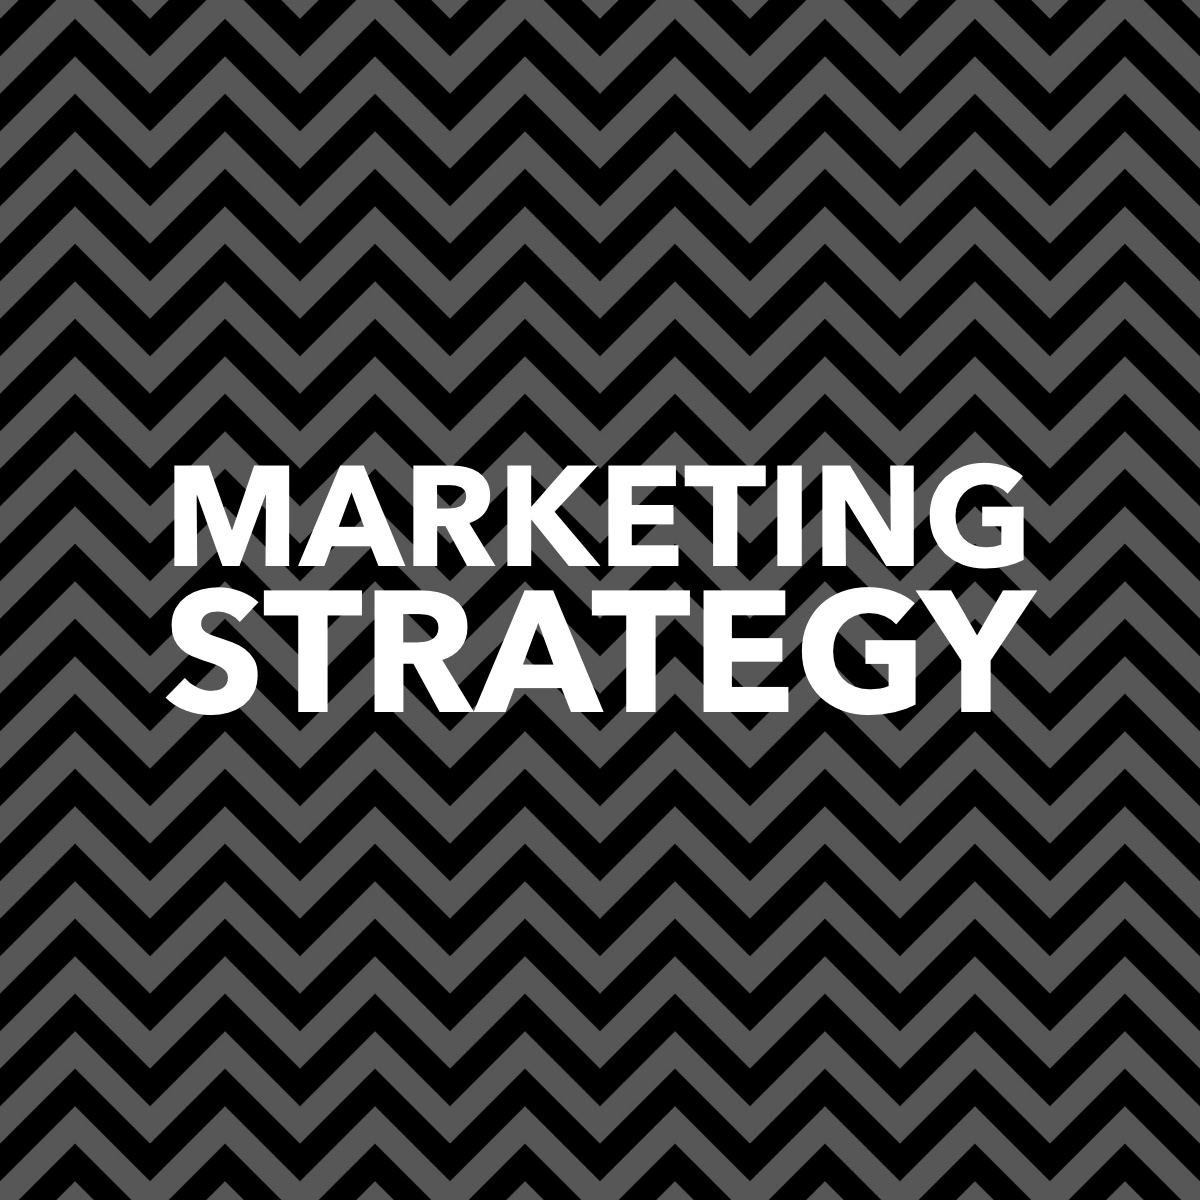 marketing-strategy-by-wildmoon-marketing